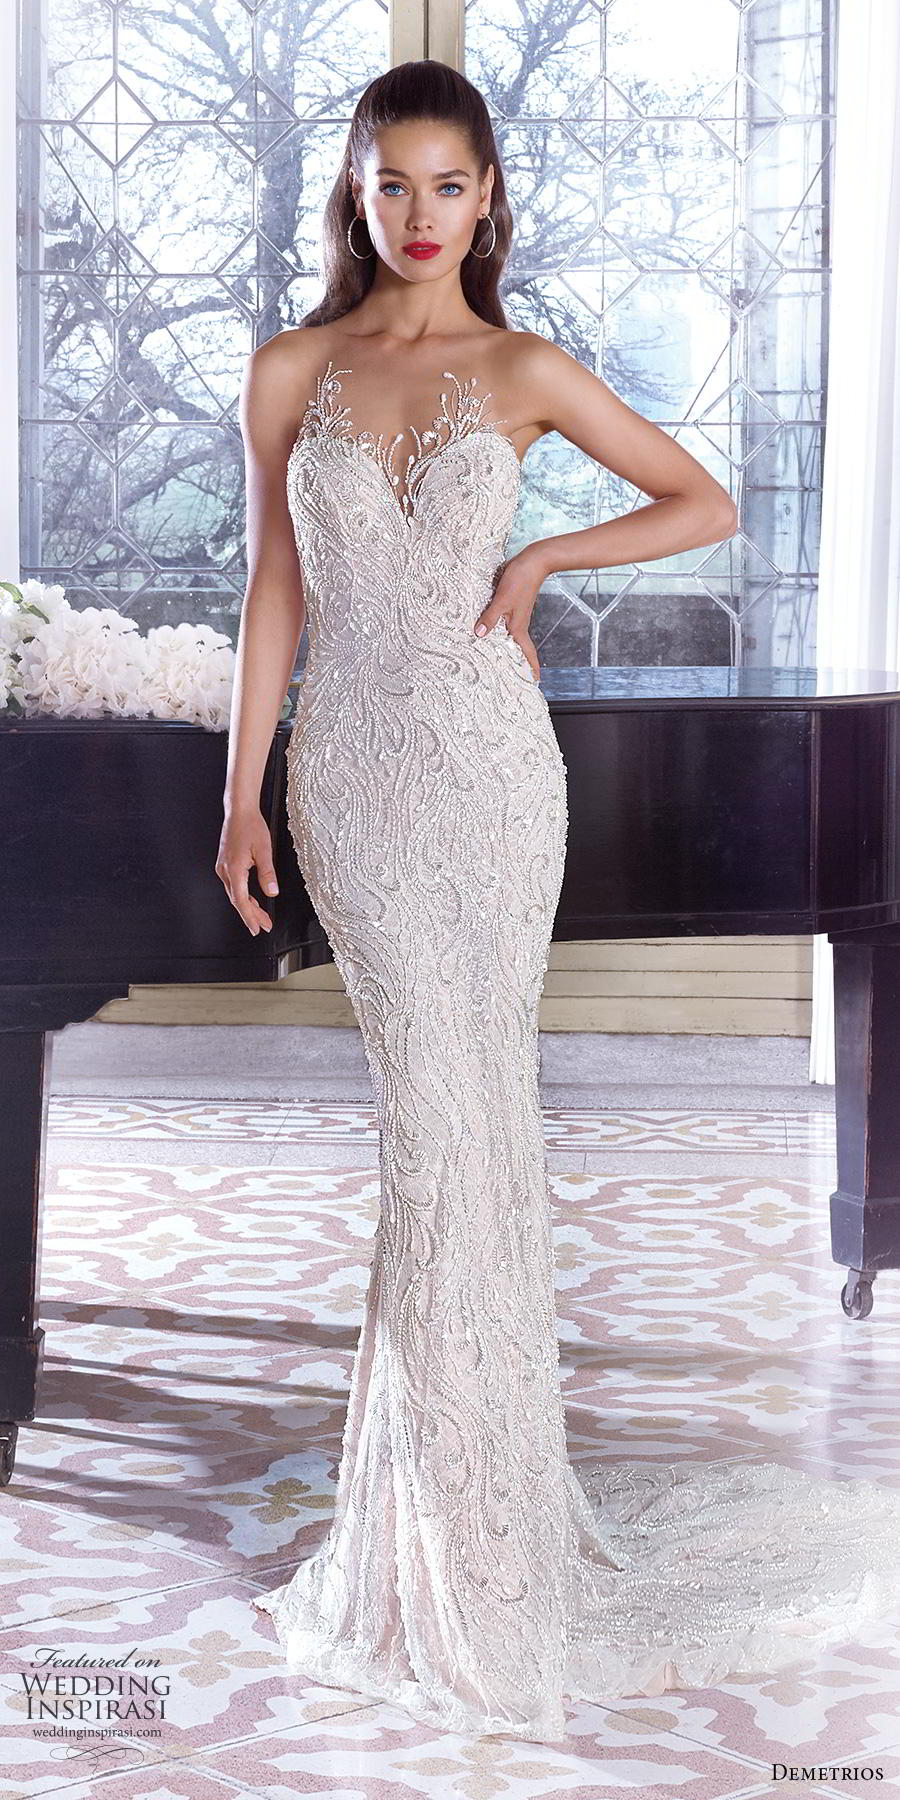 demetrios 2019 bridal strapless sweetheart neckline full embellishment elegant glamorous fit and flare sheath wedding dress embellished back short train (8) mv